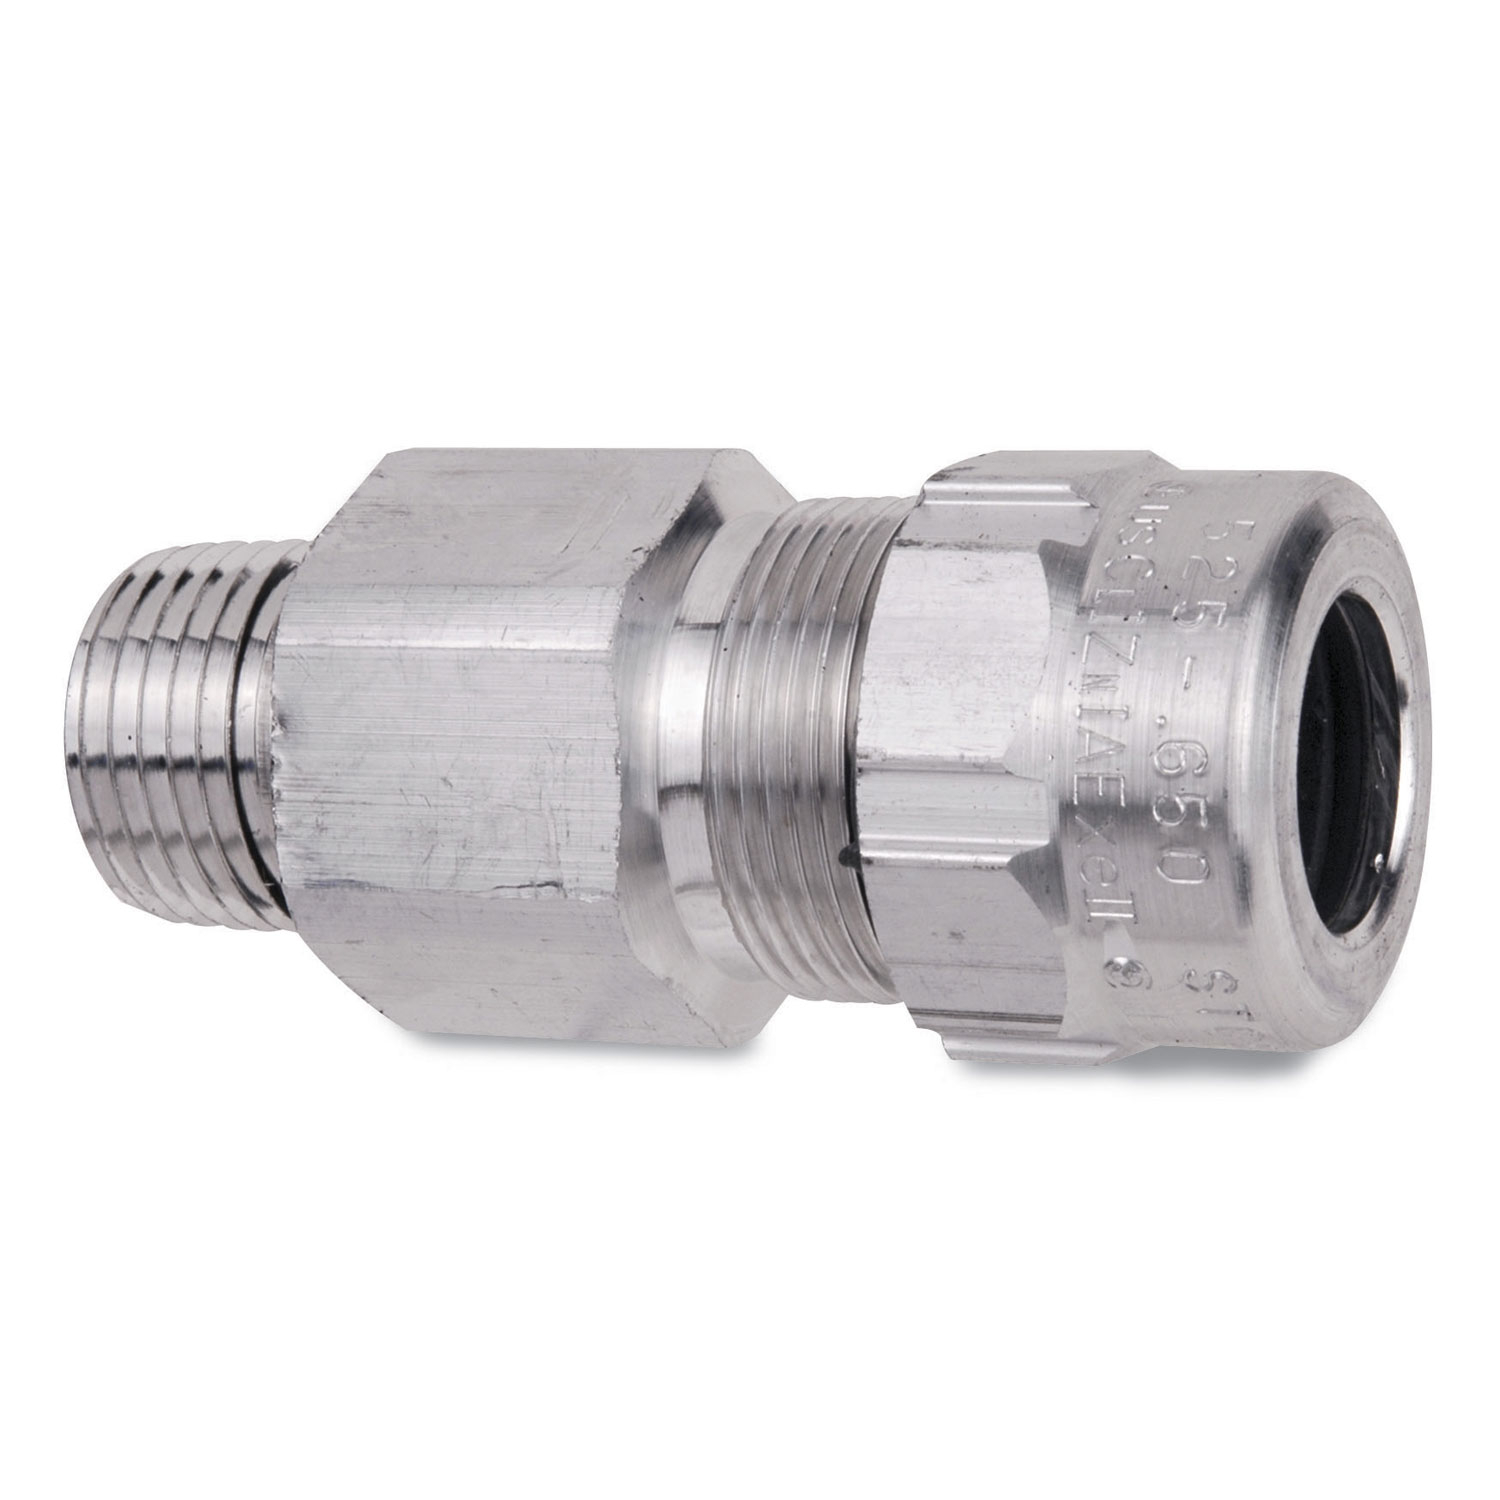 T&B Fittings,ST050-466,T&B® Industrial Fitting Star Teck® Cable Connector, 1/2 in Trade, 0.825 - 0.985 in Cable Openings, Aluminum